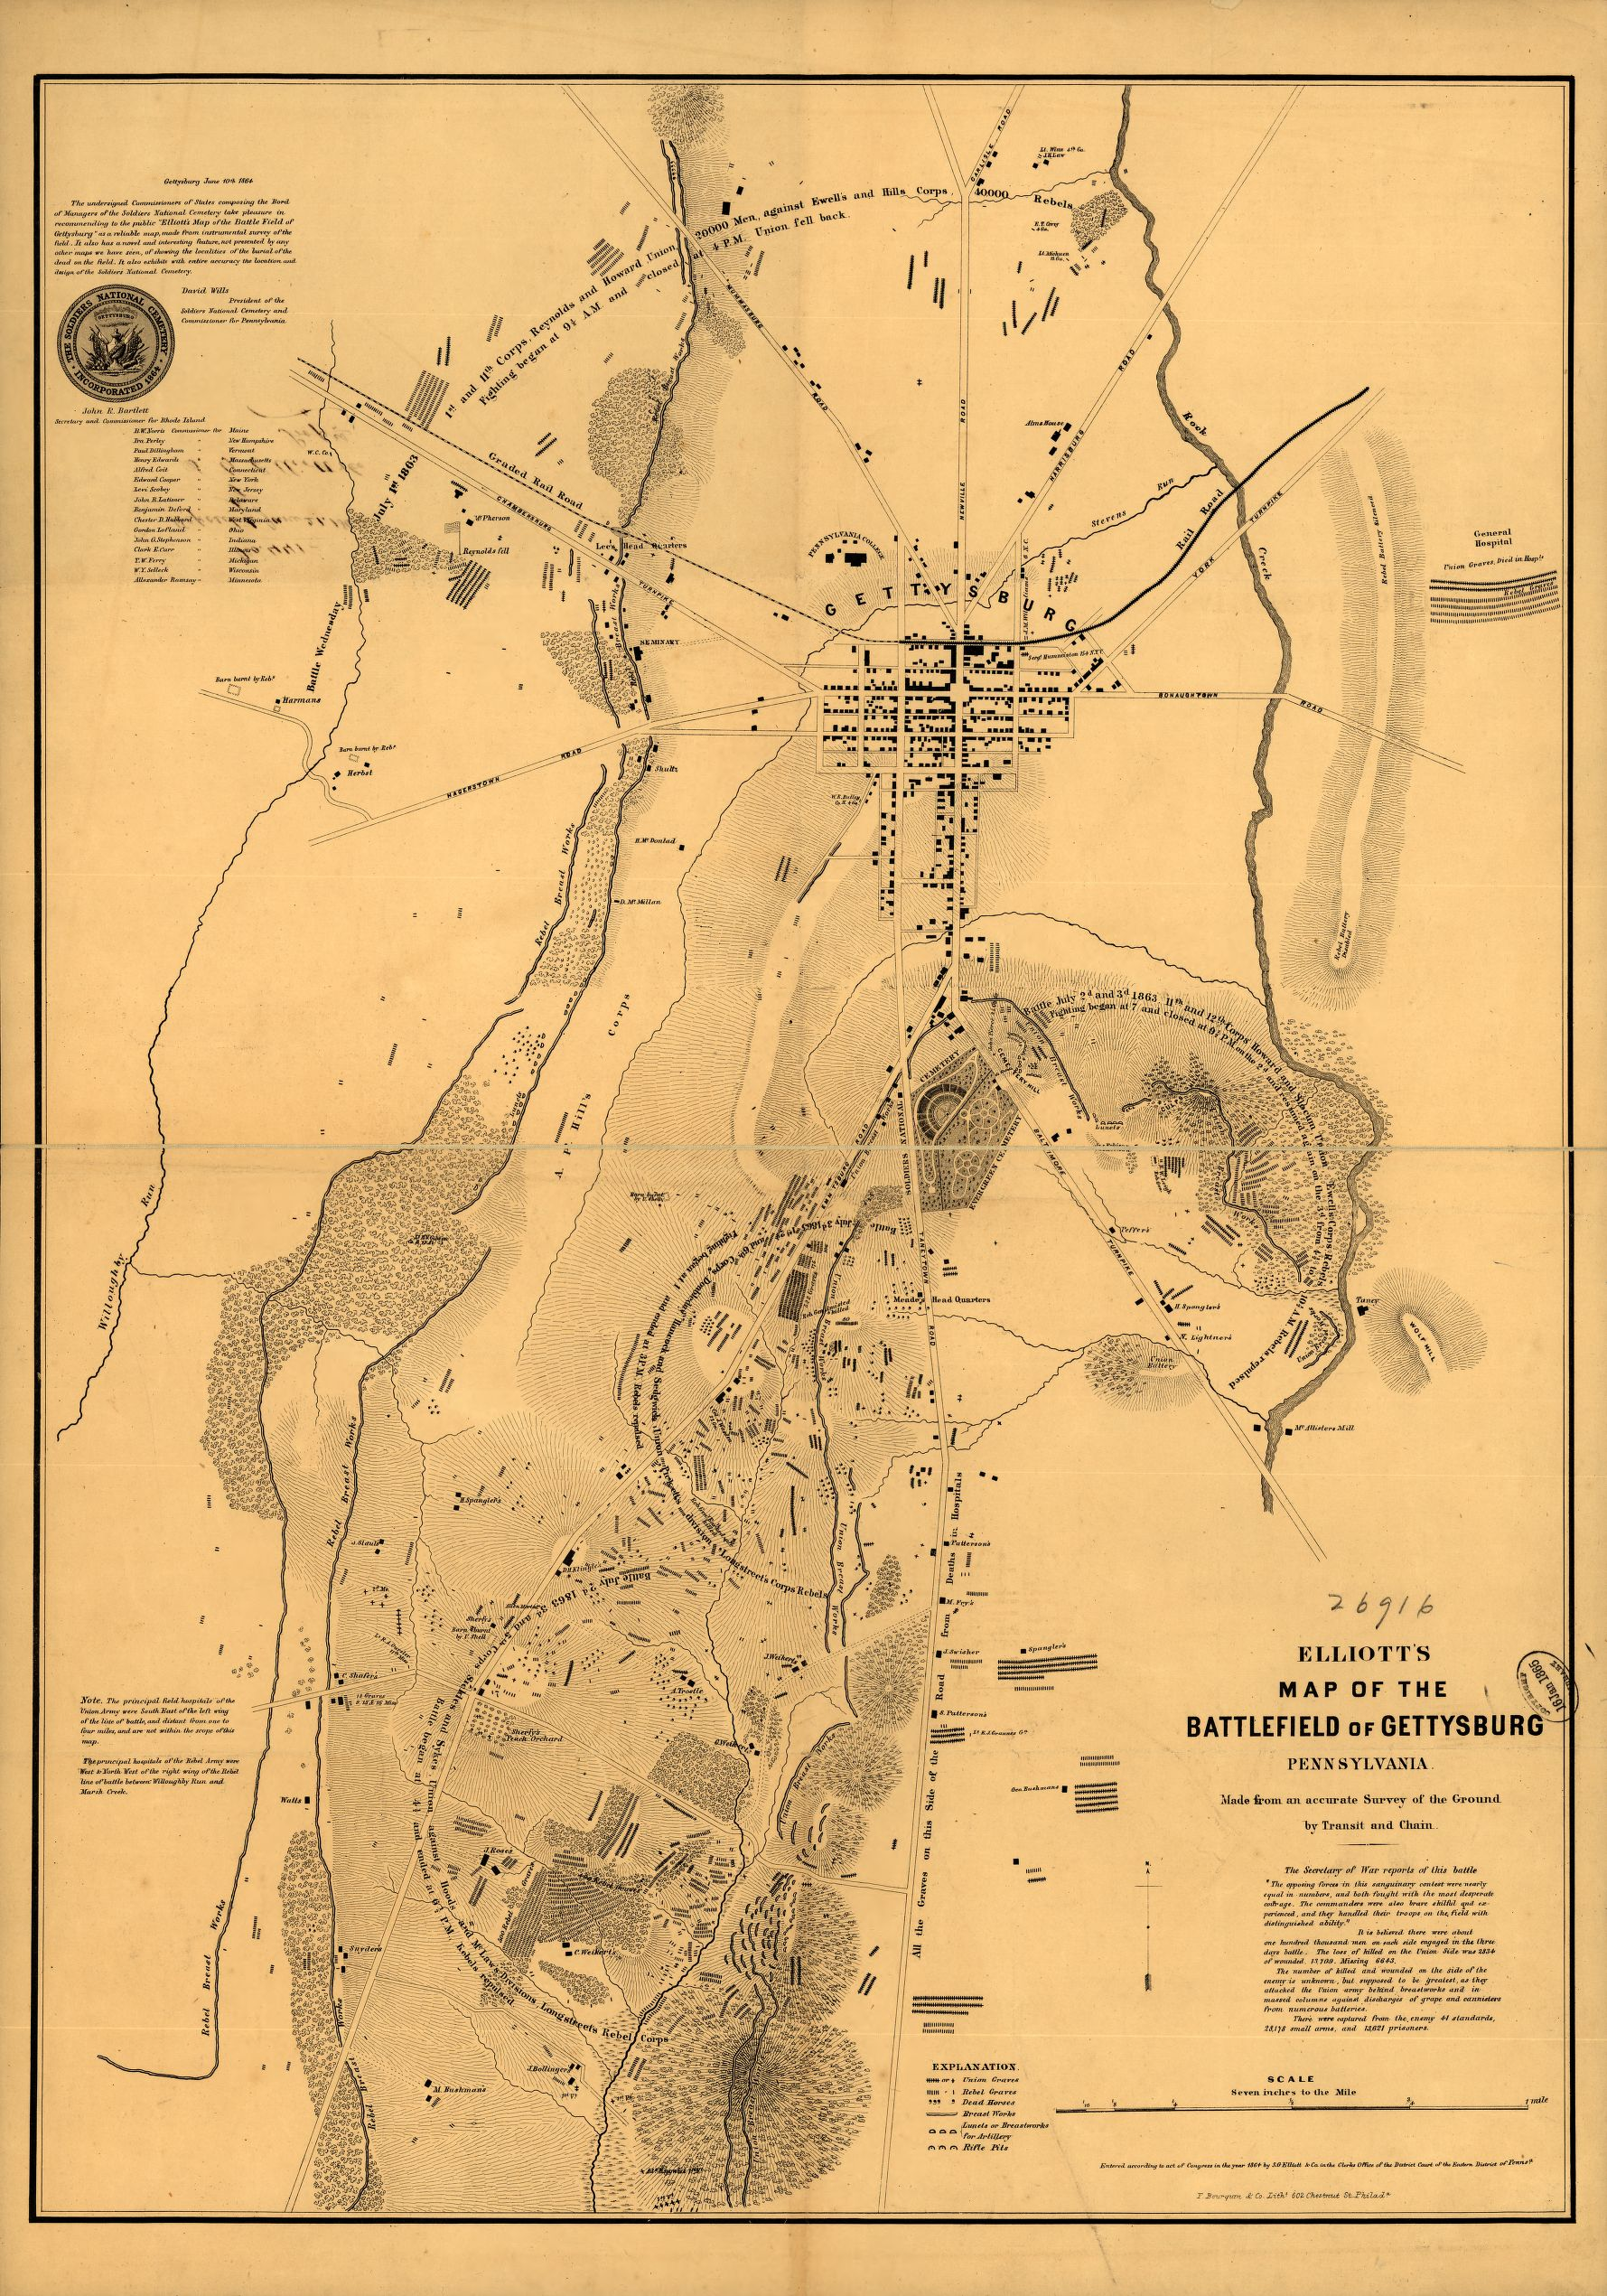 Elliott's Map of Gettysburg, with all the gravesites marked